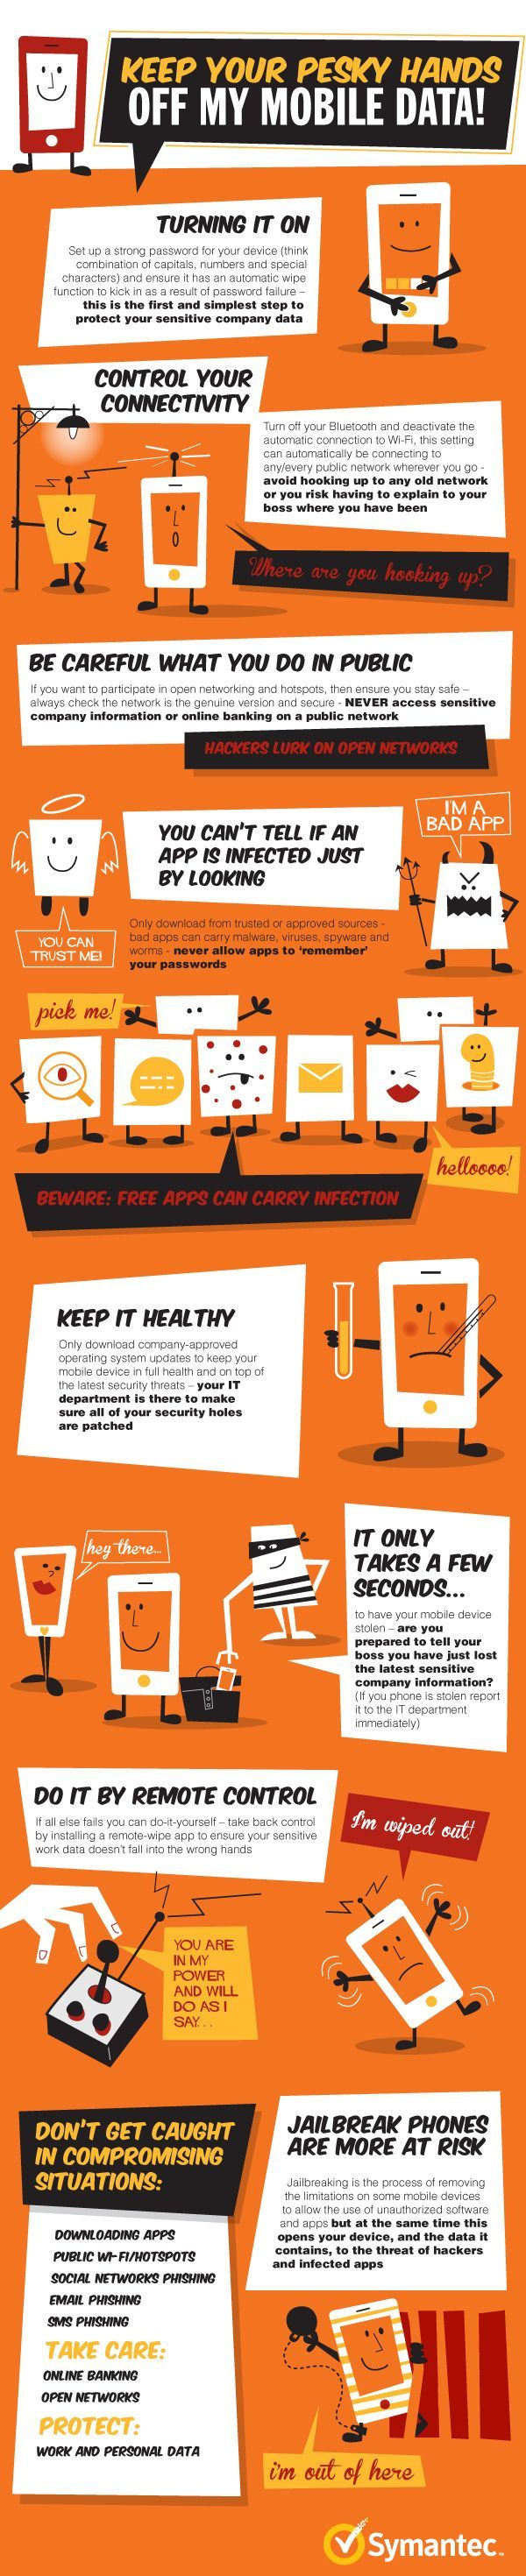 Keep Your Pesky Hands Off My #Mobile Data! #Symantec Know about mobile  security